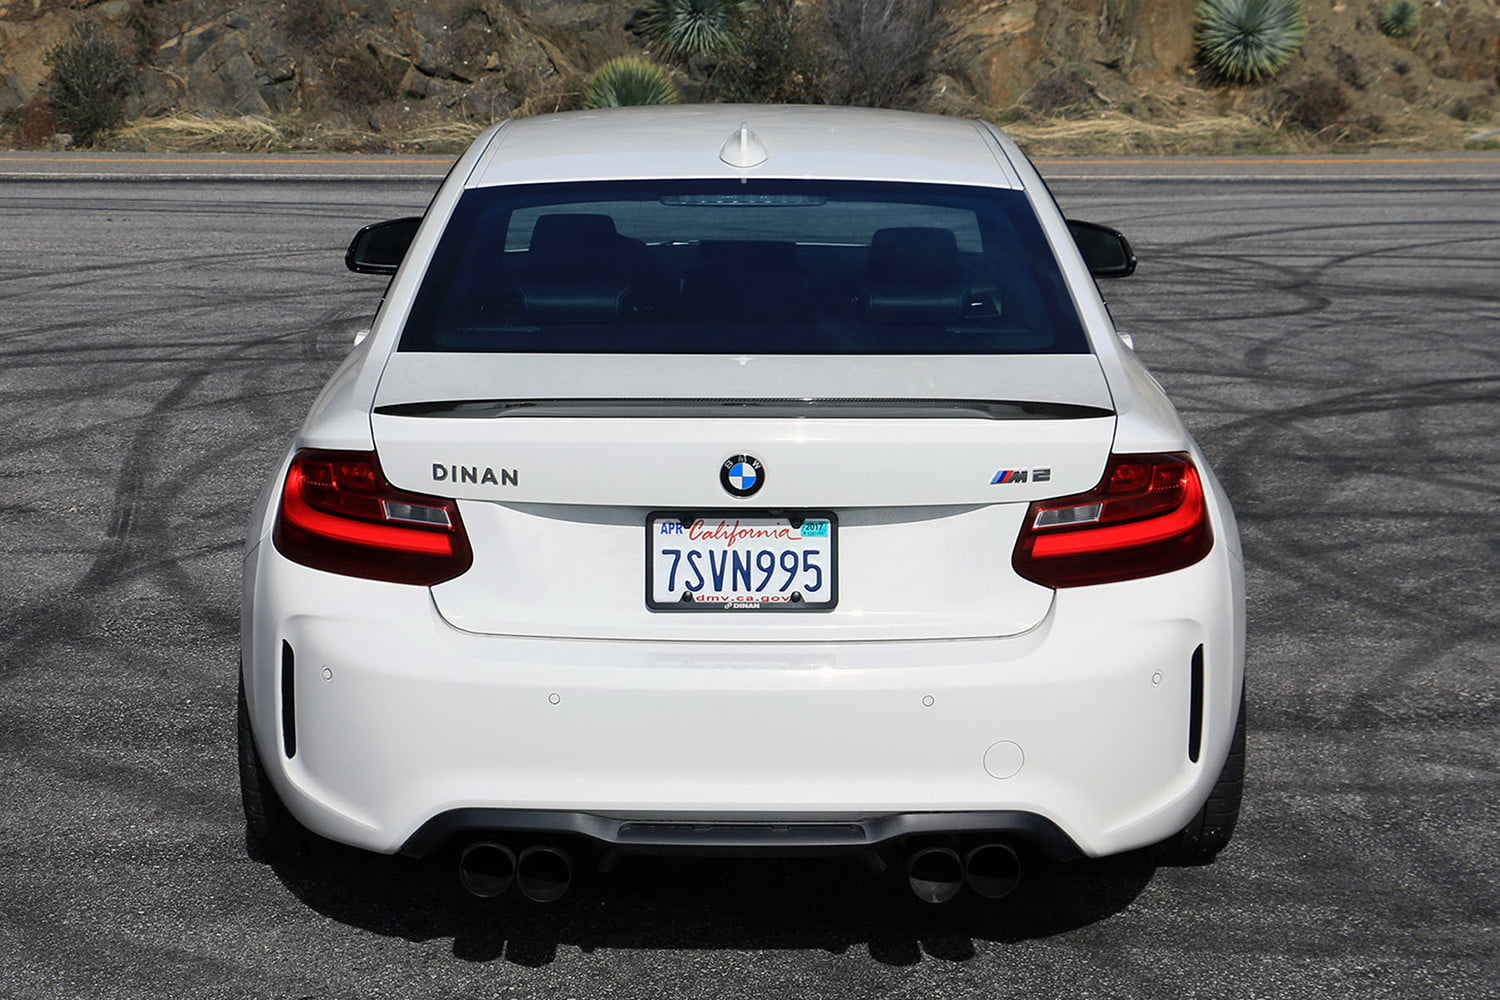 bmw tuner dinan gives the m2 a performance focused makeover we go for spin img 5562